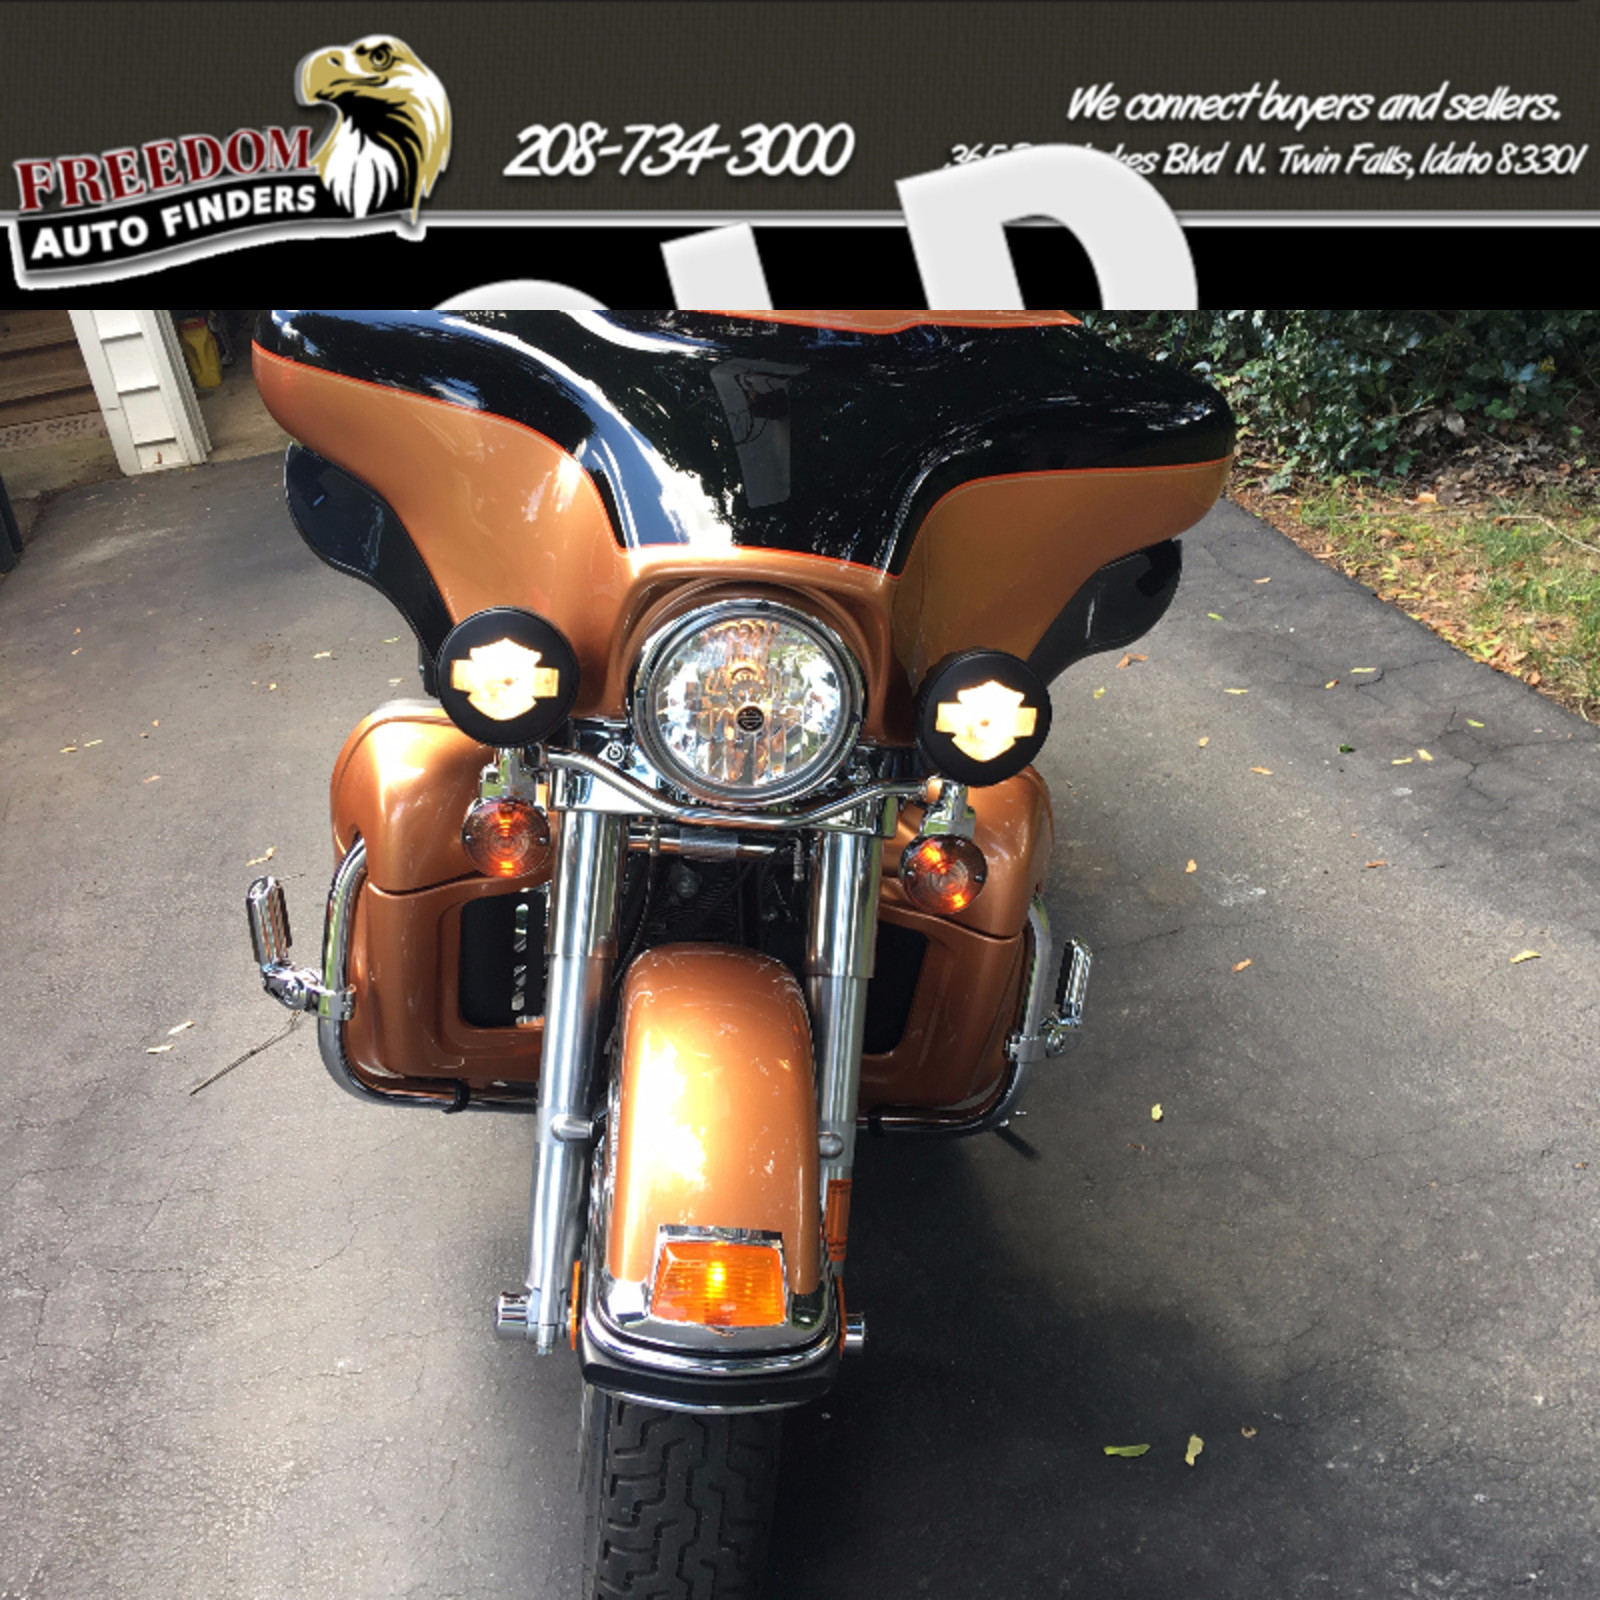 2008 harley davidson ultra classic electra glide ebay. Black Bedroom Furniture Sets. Home Design Ideas